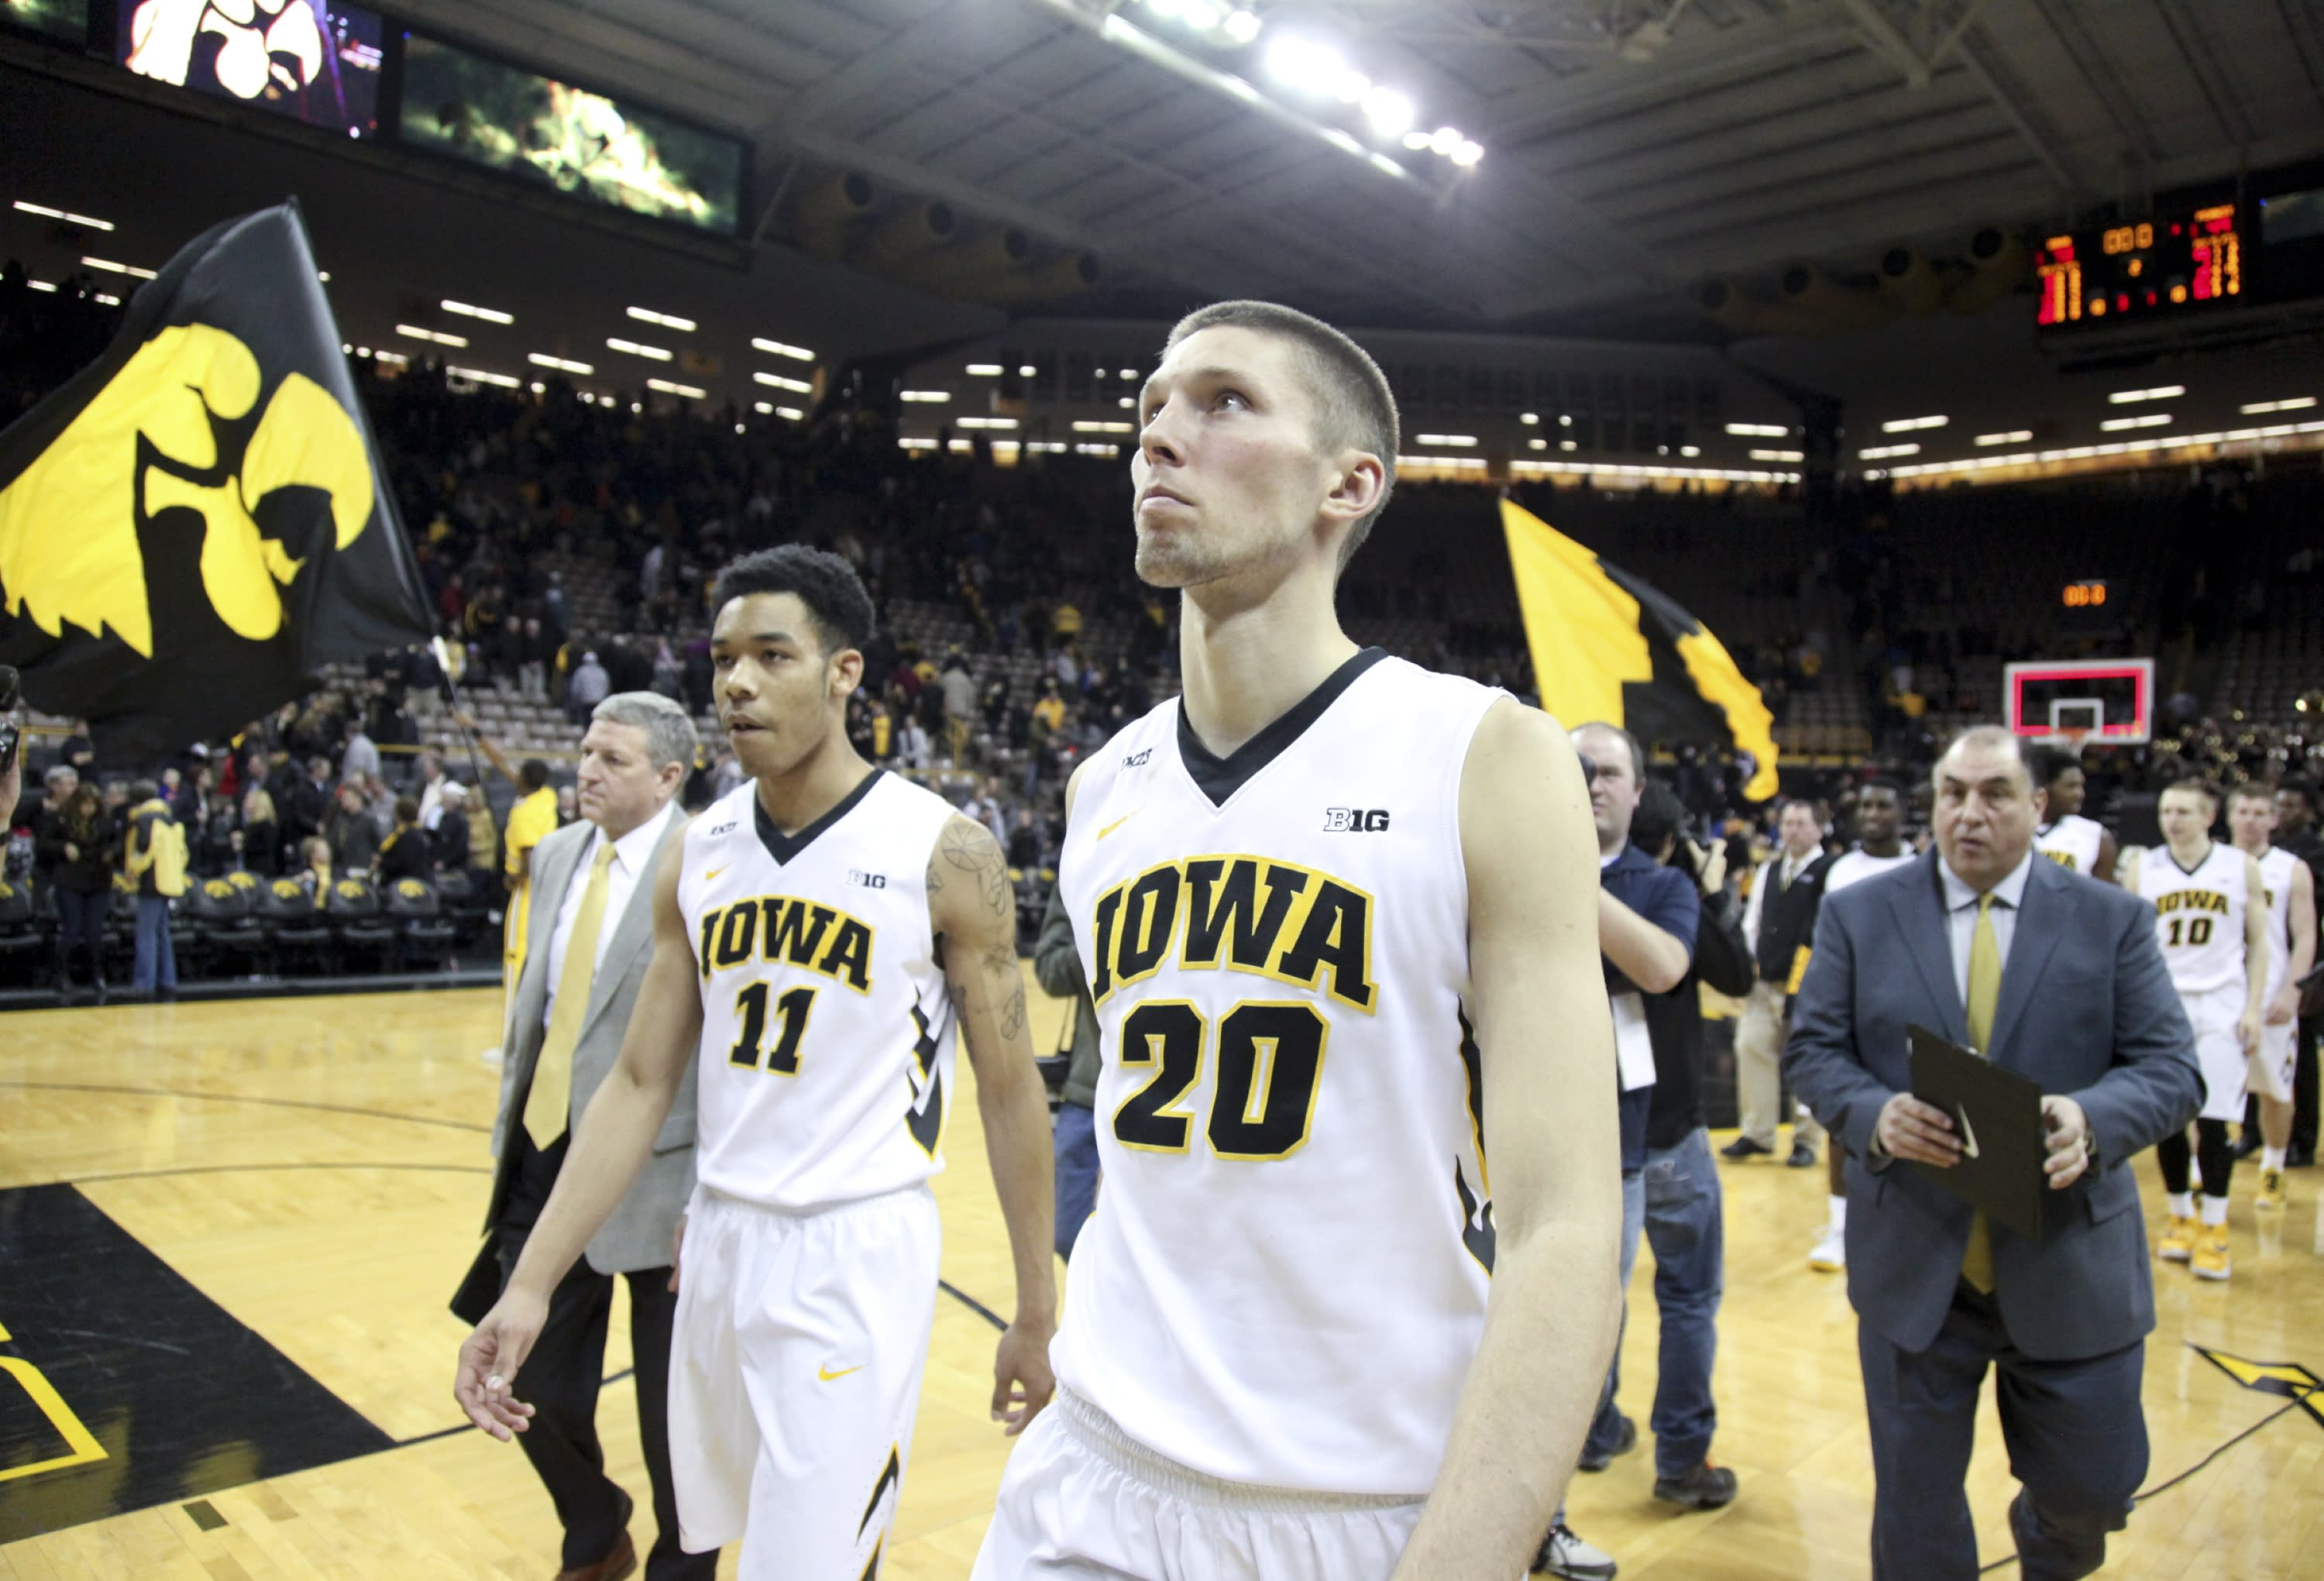 Brad vs. the Book: Historic season to continue for Hawkeyes at IU